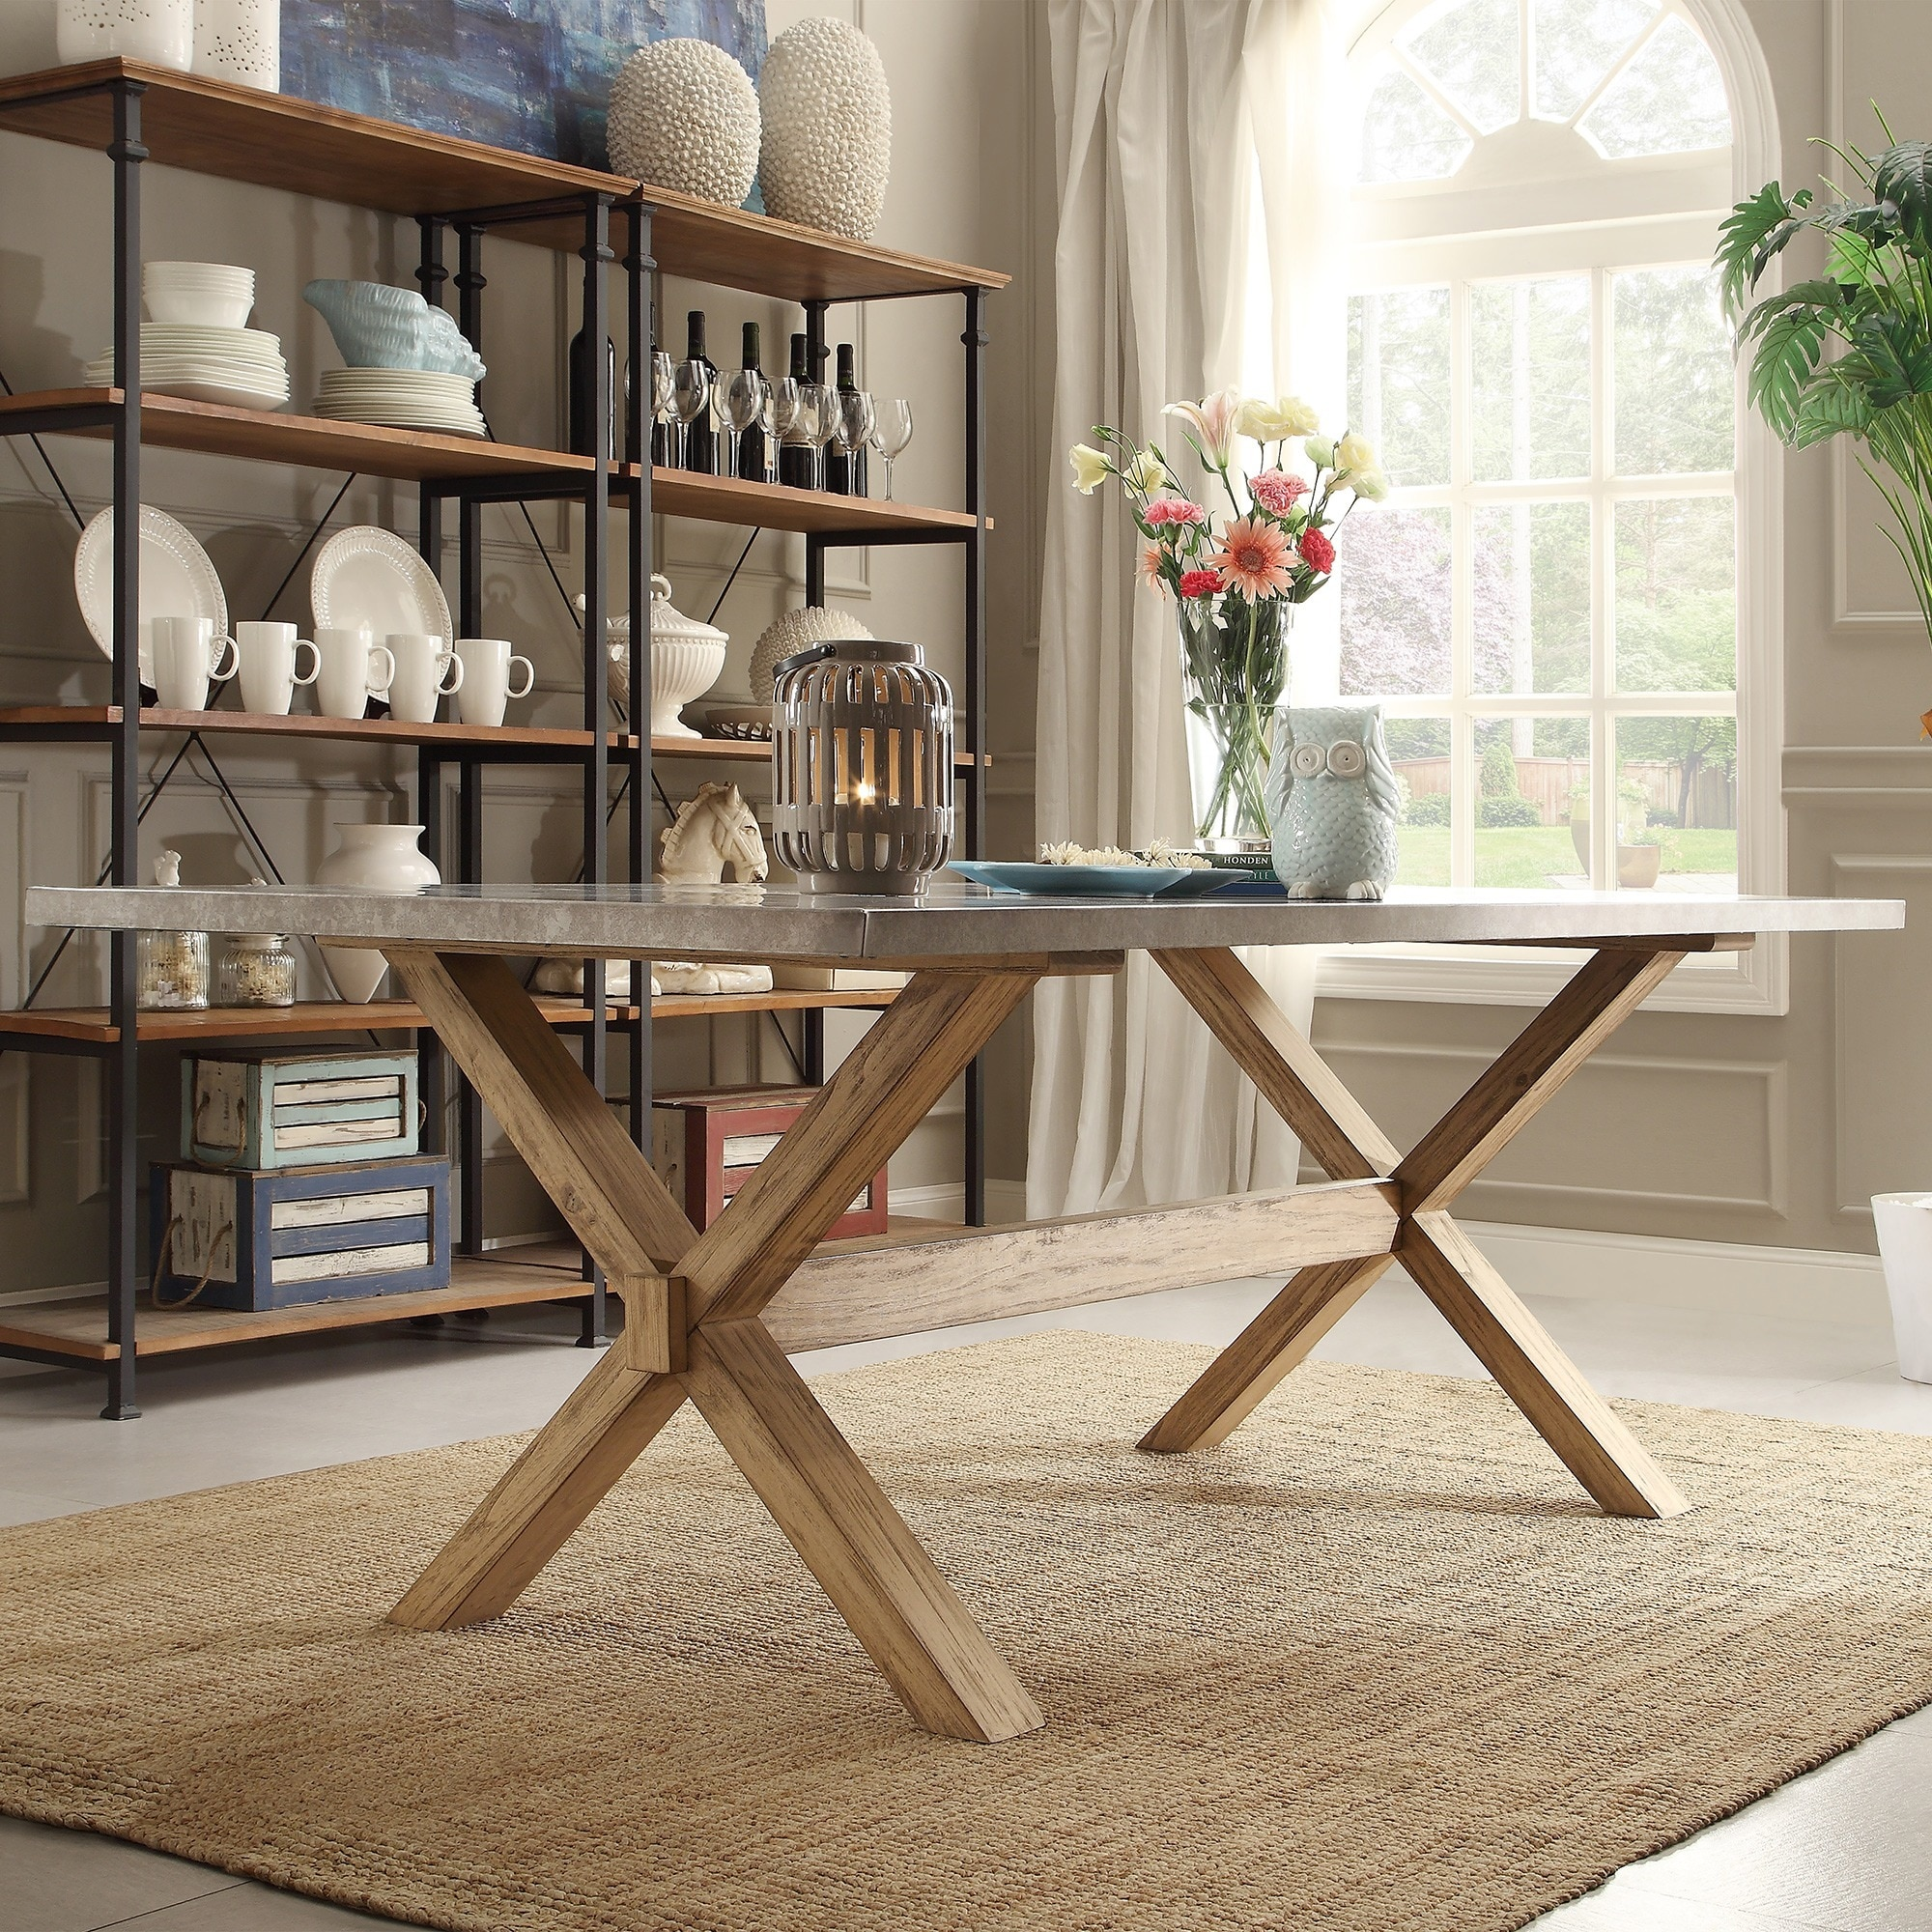 zinc dining table copper shop aberdeen industrial zinc top weathered oak trestle dining table by inspire artisan on sale free shipping today overstockcom 9814768